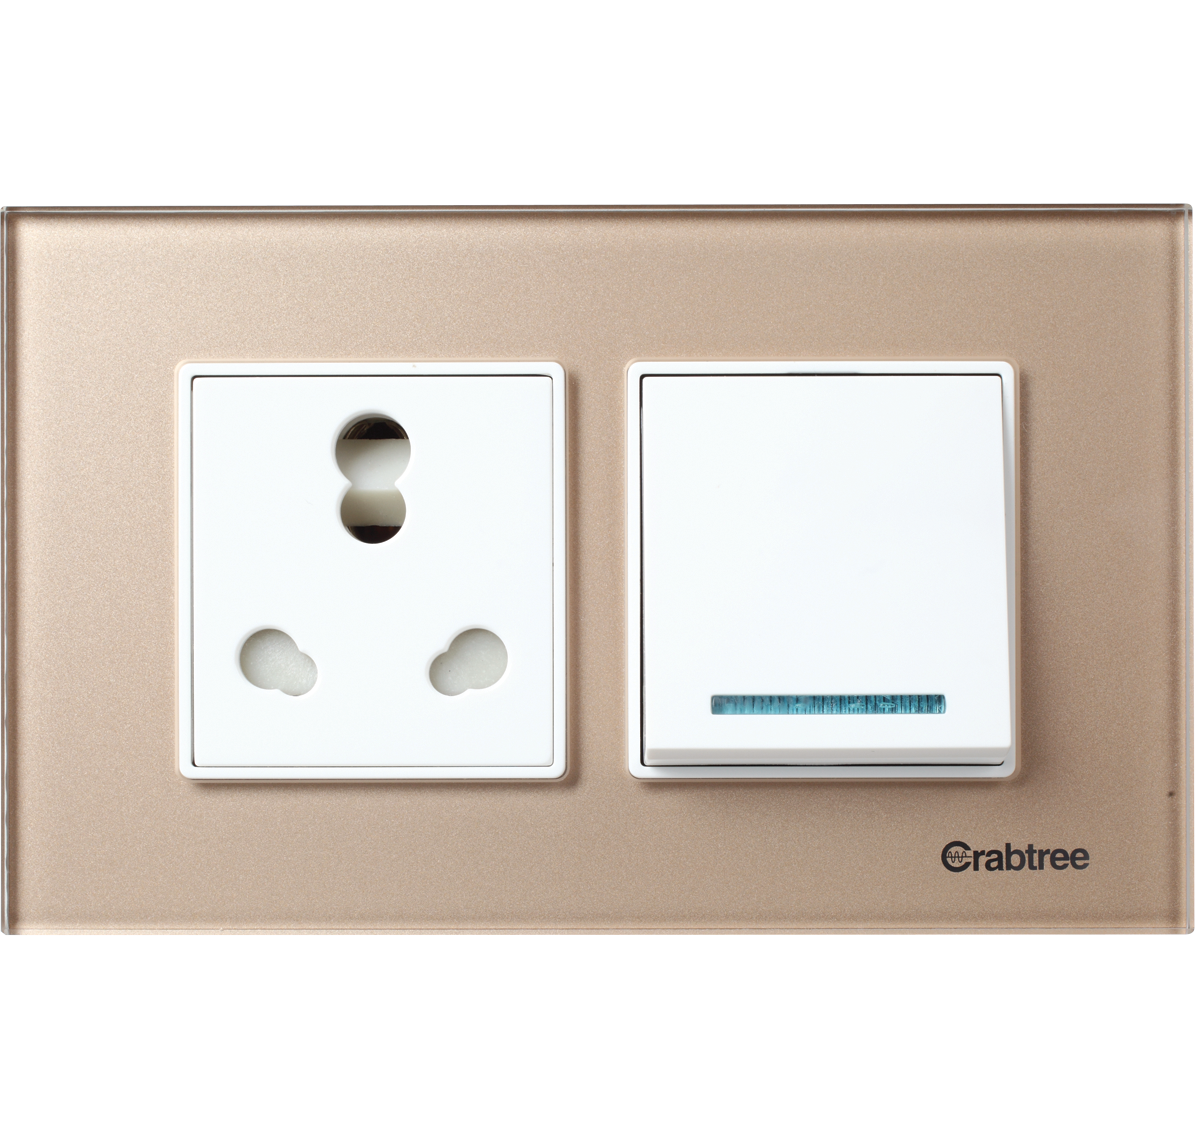 Crabtree India Usb Plug Sockets Push Button Switches 3 Way 4 Switch M Cover Plate Pearl White